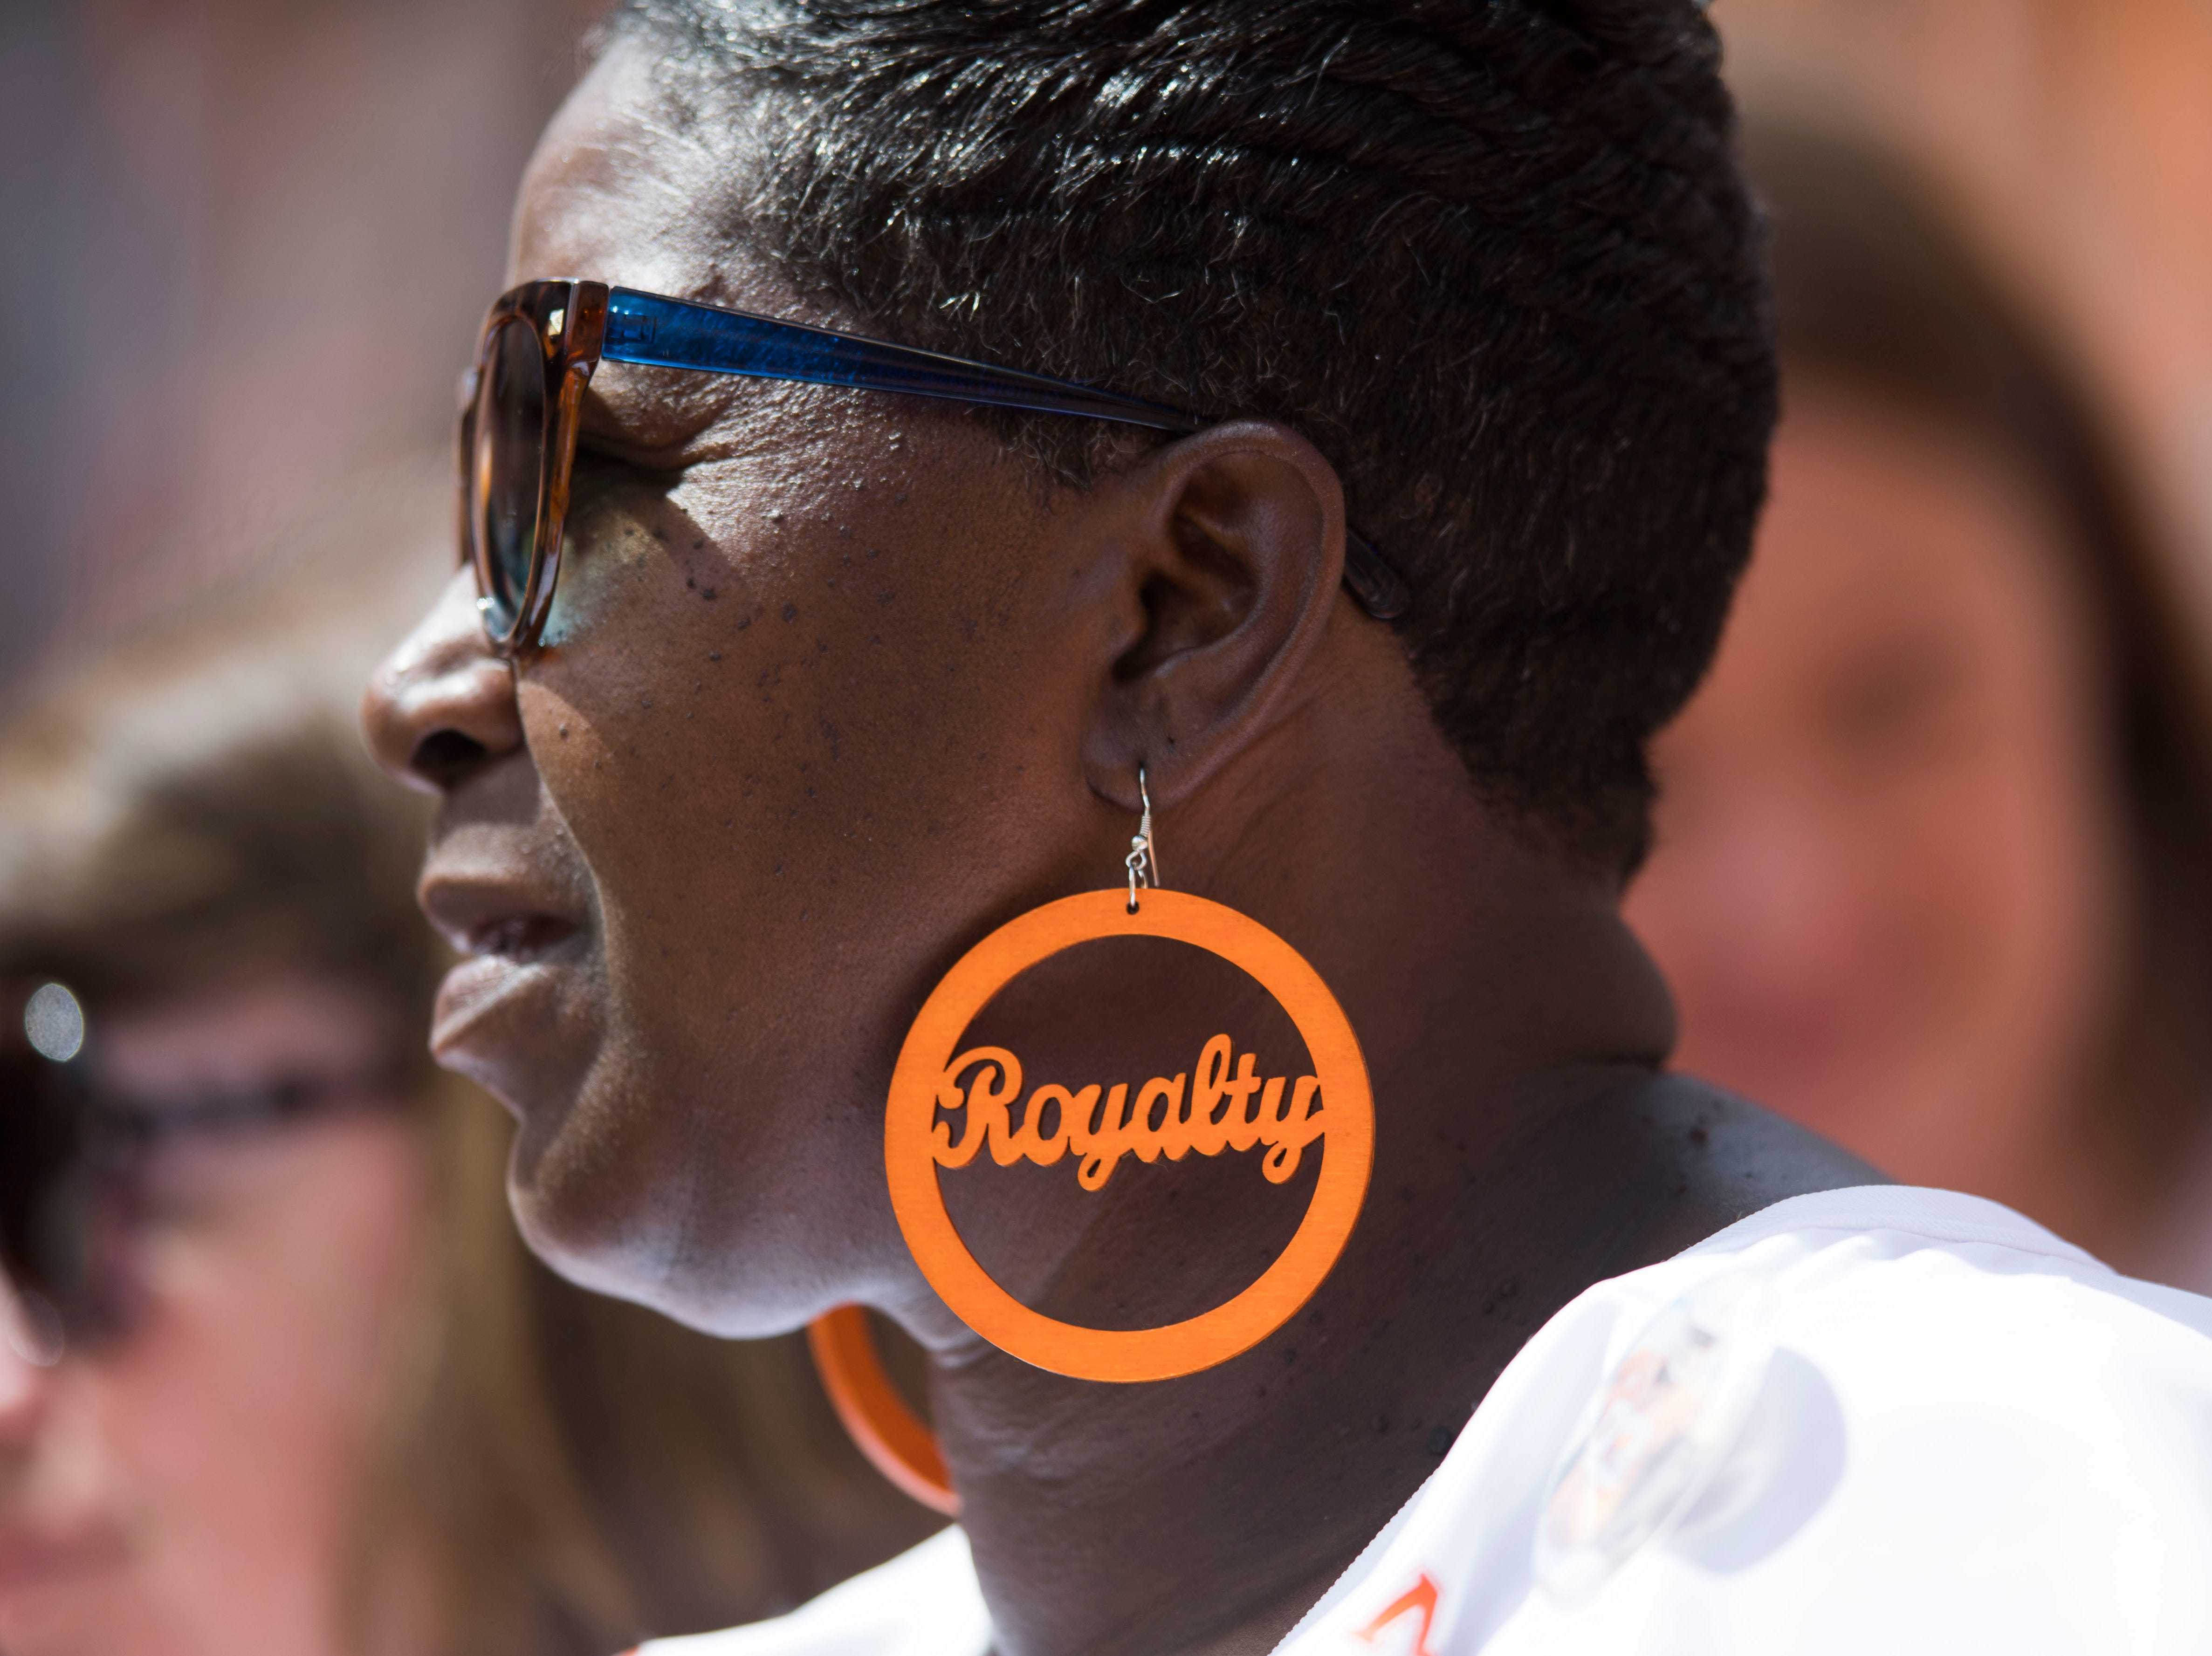 A Vols fan wears festive earrings during the second half of a game between UT and UTEP in Neyland Stadium Sept. 15, 2018.